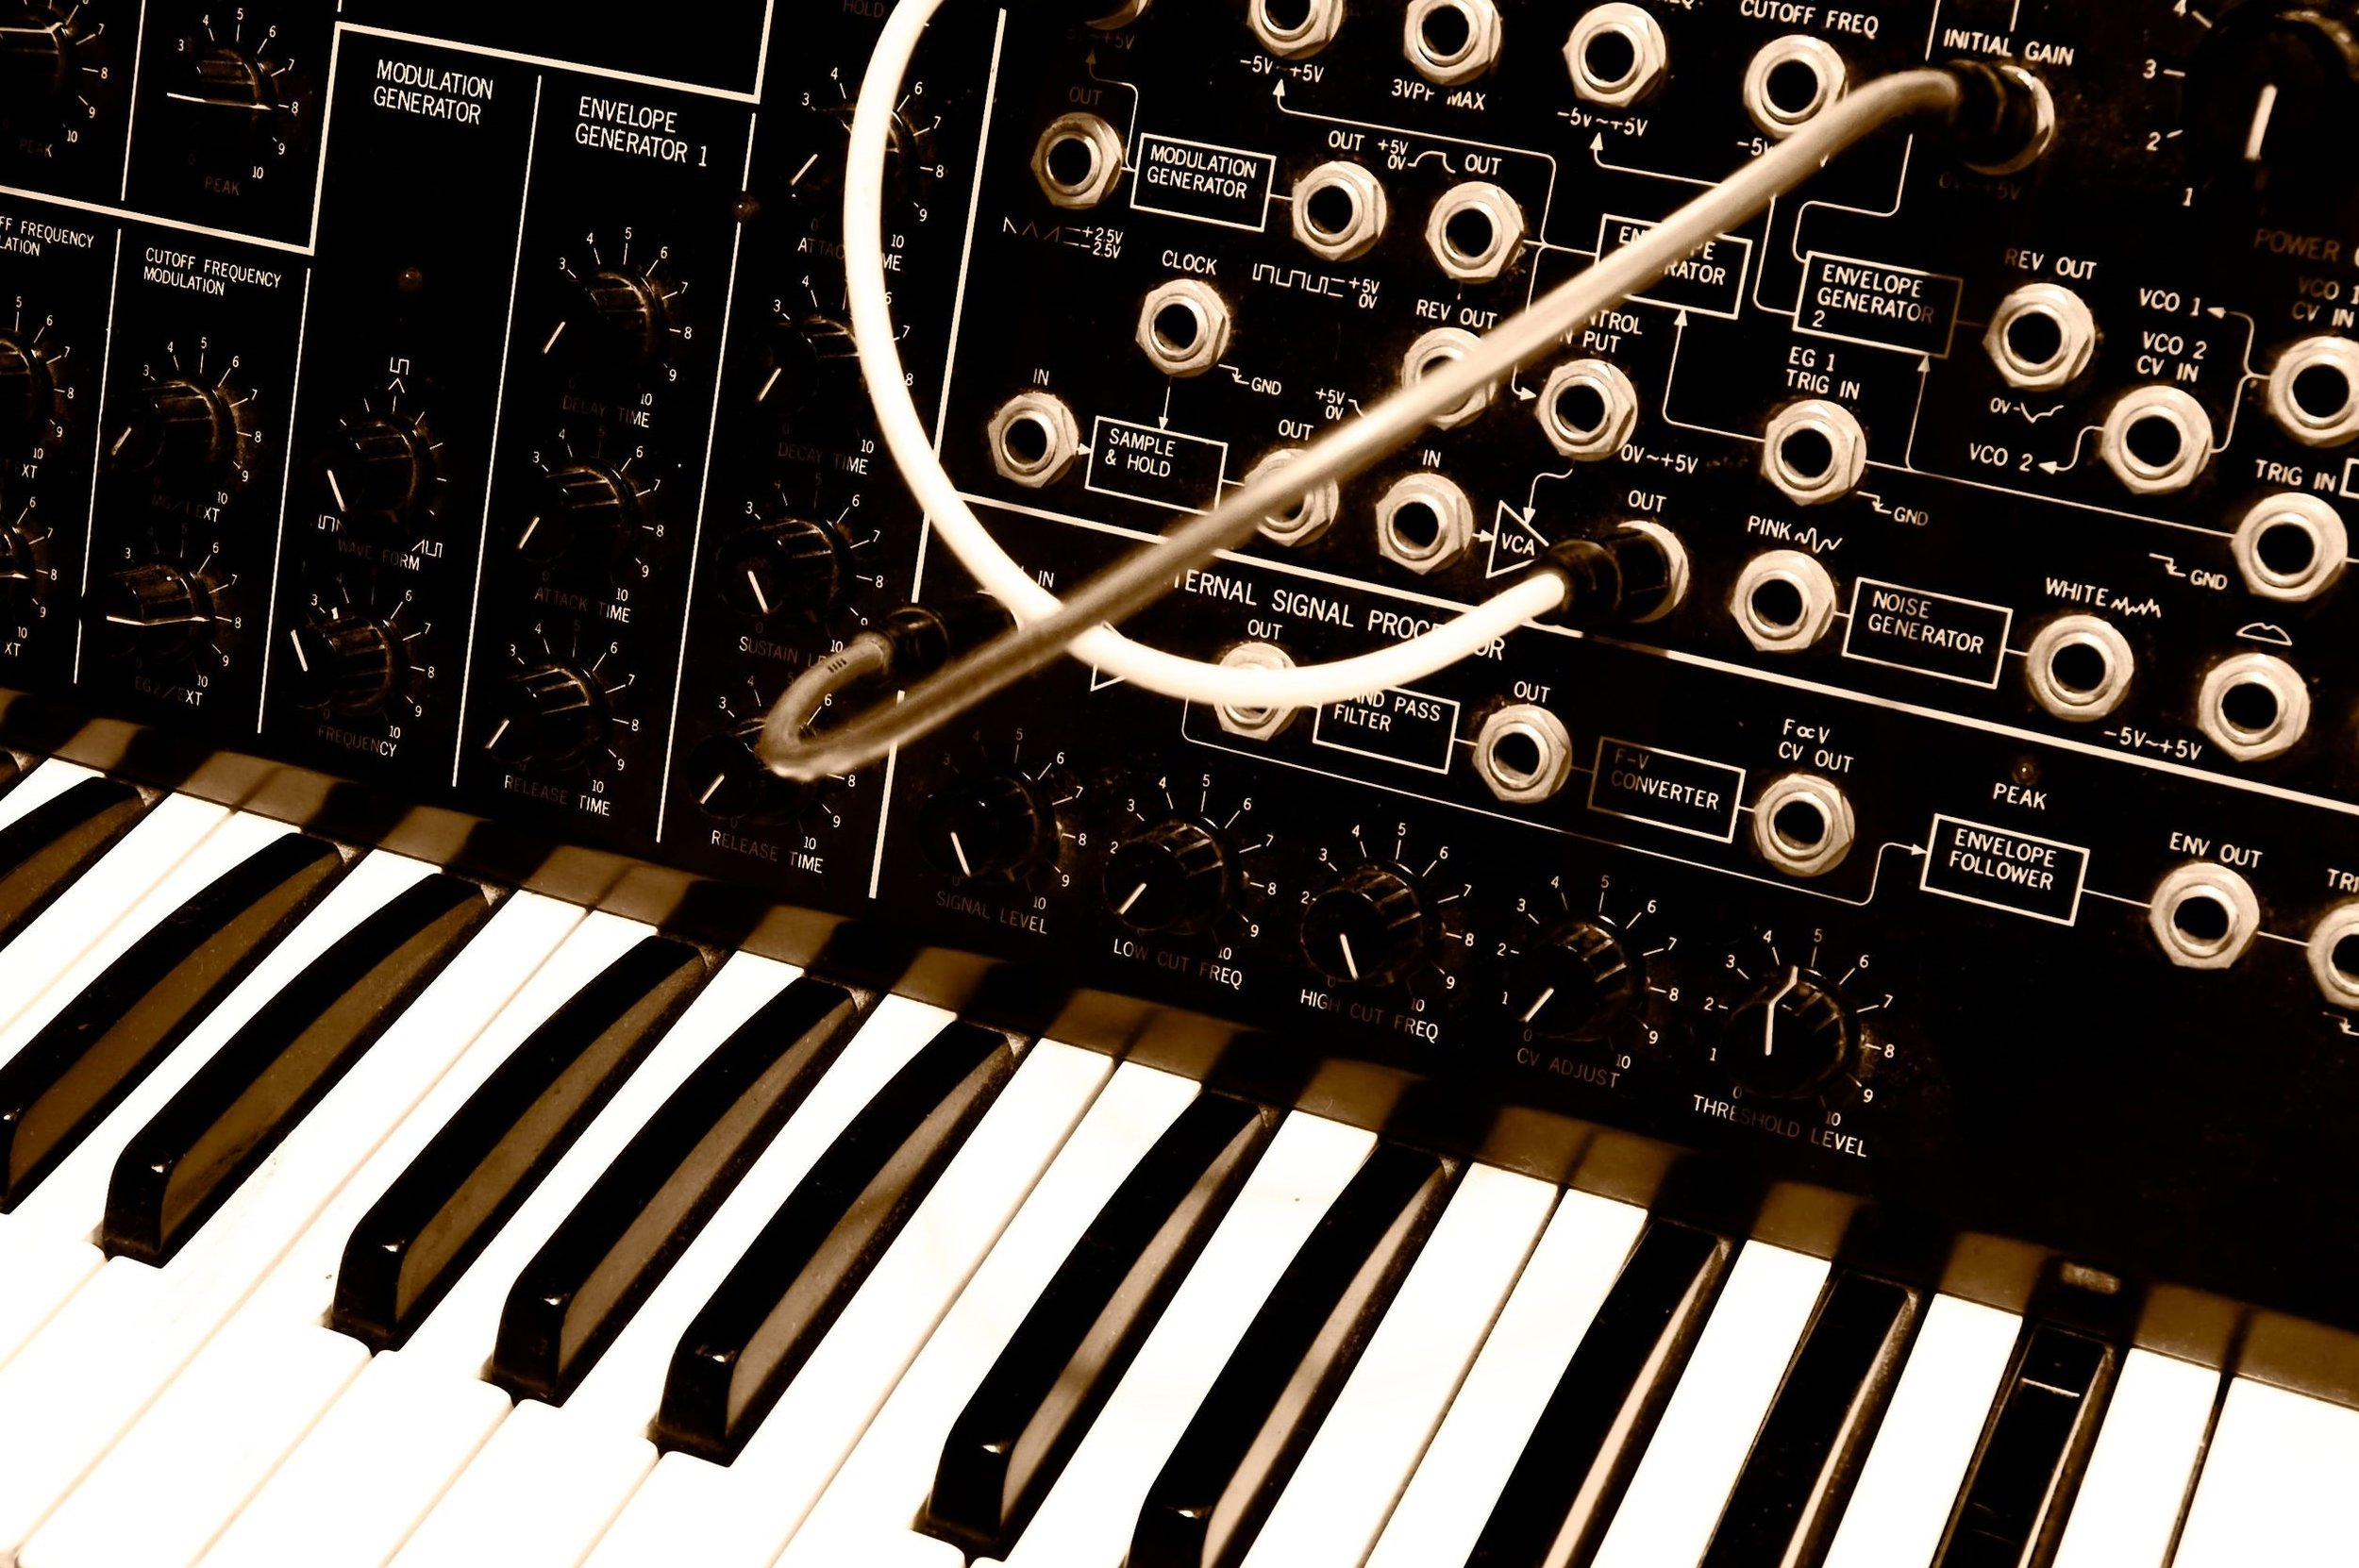 Most synths, like to Korg MS-20 above, use a piano-style keybed as an input mechanism. The Vindor ES1 uses the rising and falling of the player's breath to measure attack, decay, sustain, and release.